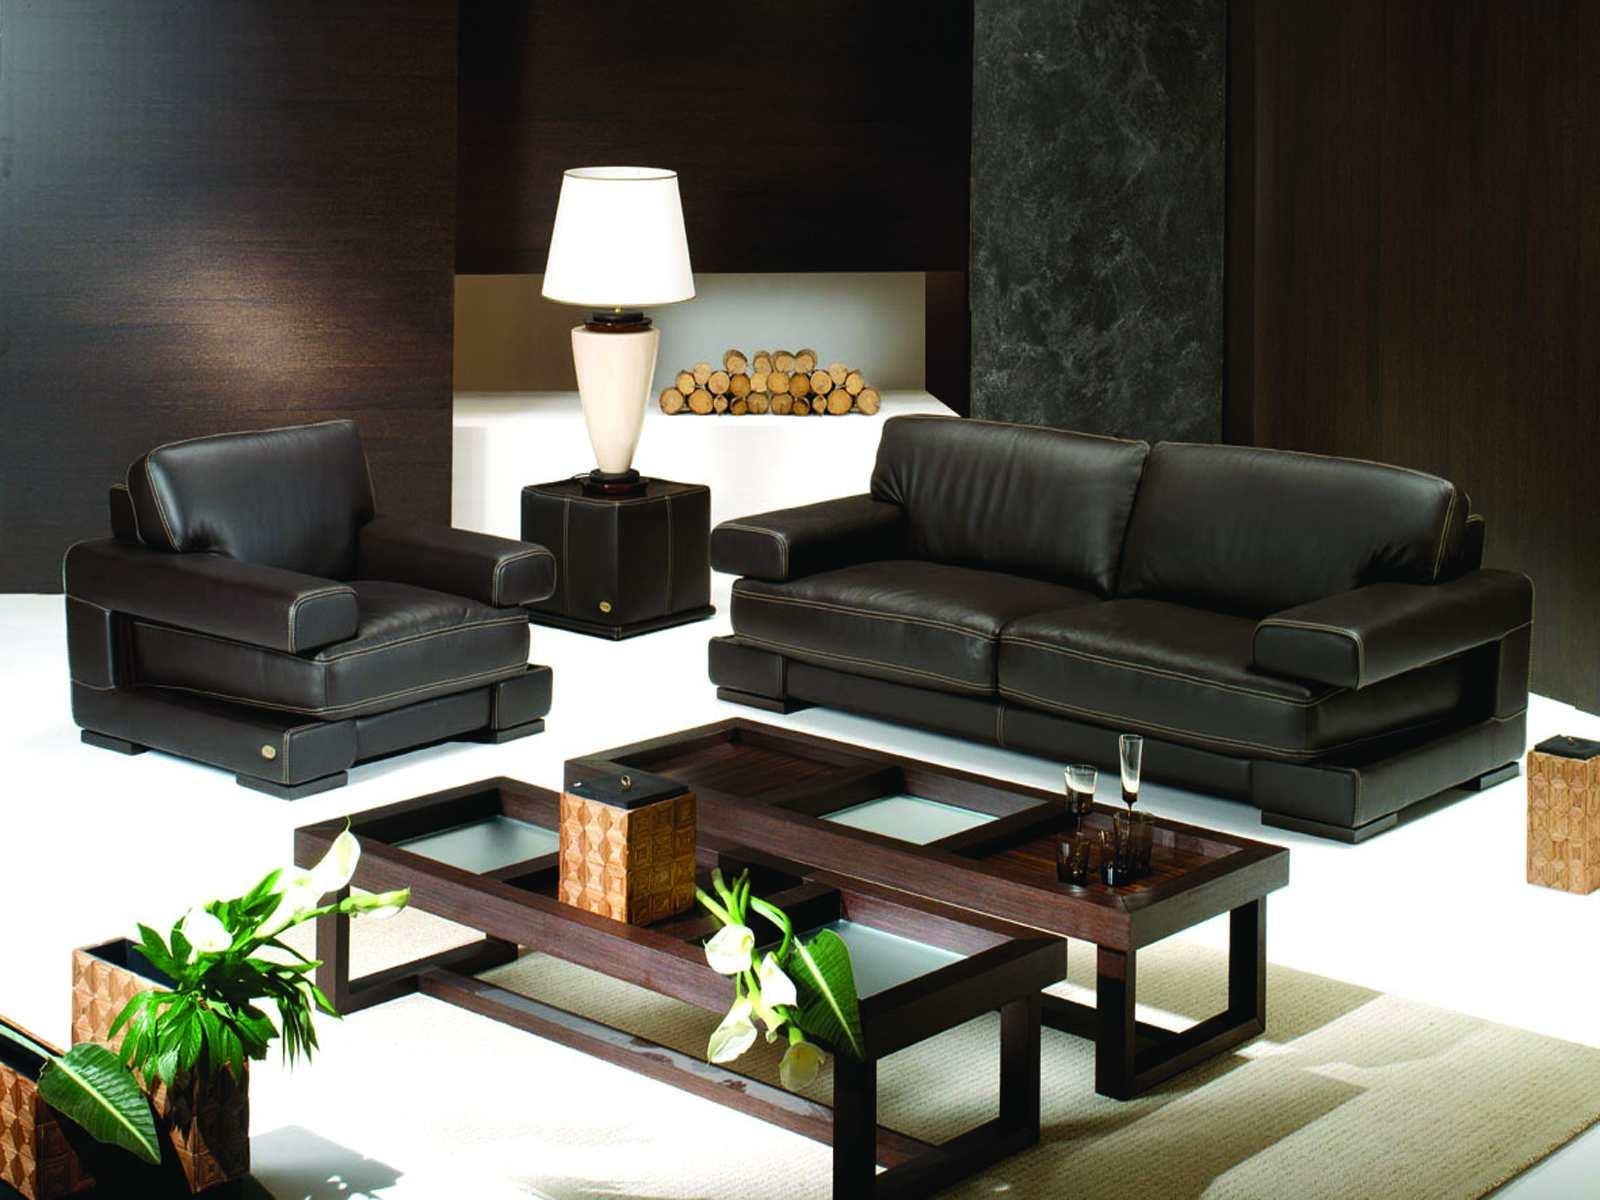 Black Living Room Furniture Living Room Design And Living Room Ideas With Regard To Black Sofas For Living Room (Image 9 of 20)